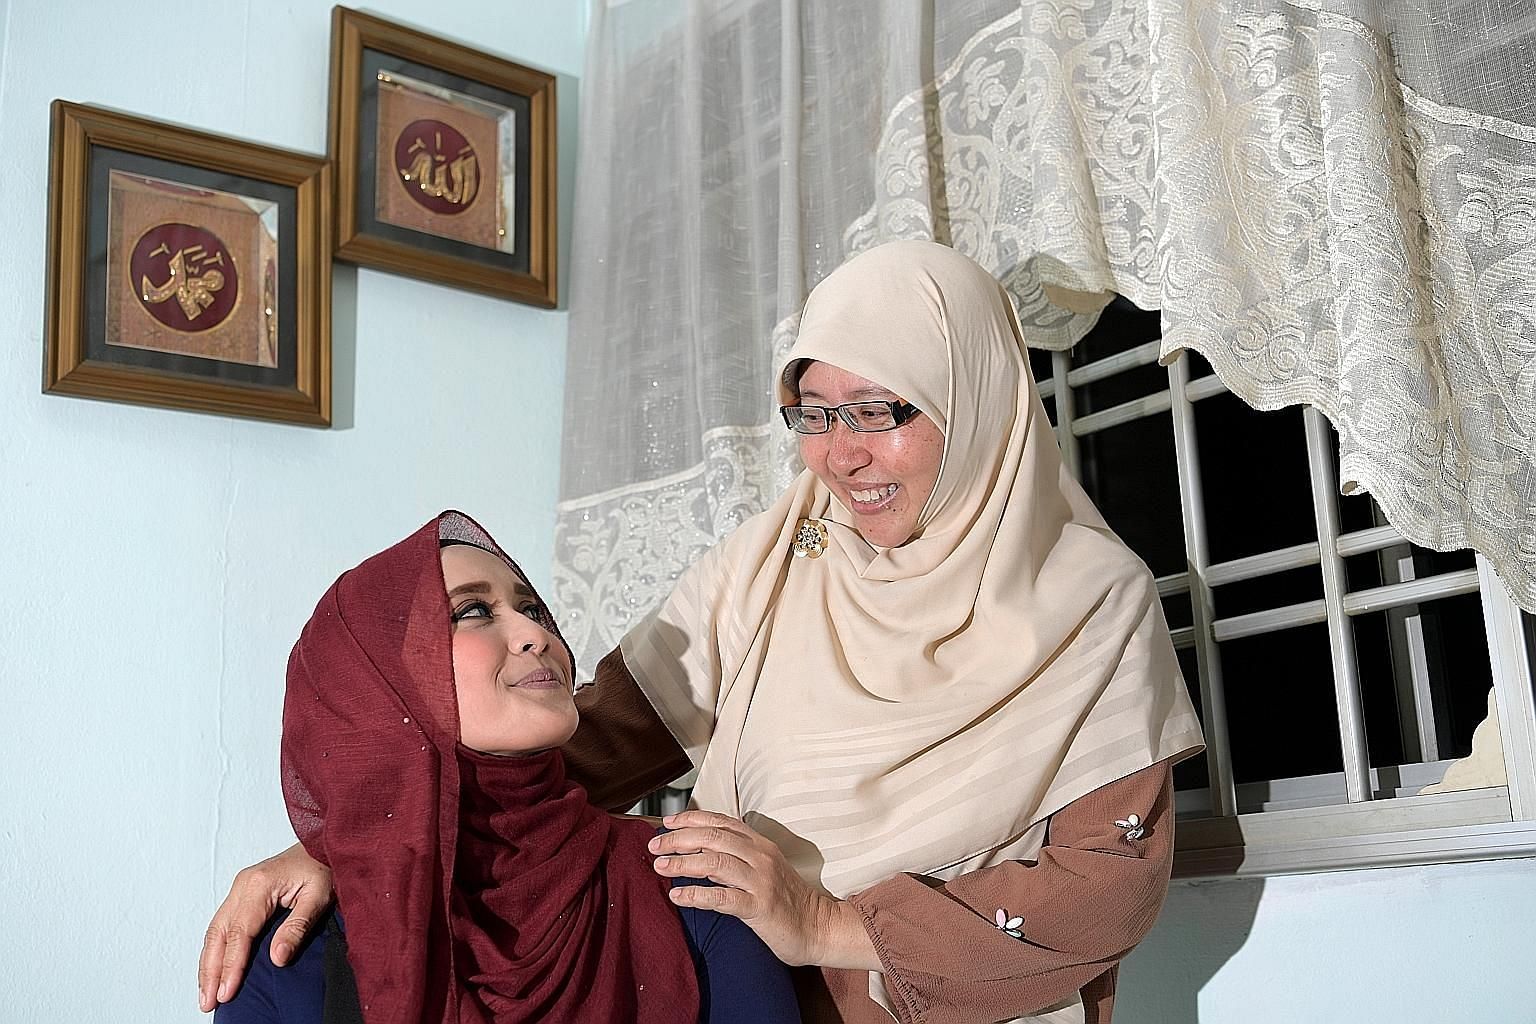 Miss Nur Diyana Abdul Aziz, who battled ovarian cancer as a 21-year-old, with her mother, Madam Noraidah Amin, a breast cancer survivor. Miss Nur Diyana, now 26, says cancer taught her to look beyond herself. She set a goal to forge a career in custo